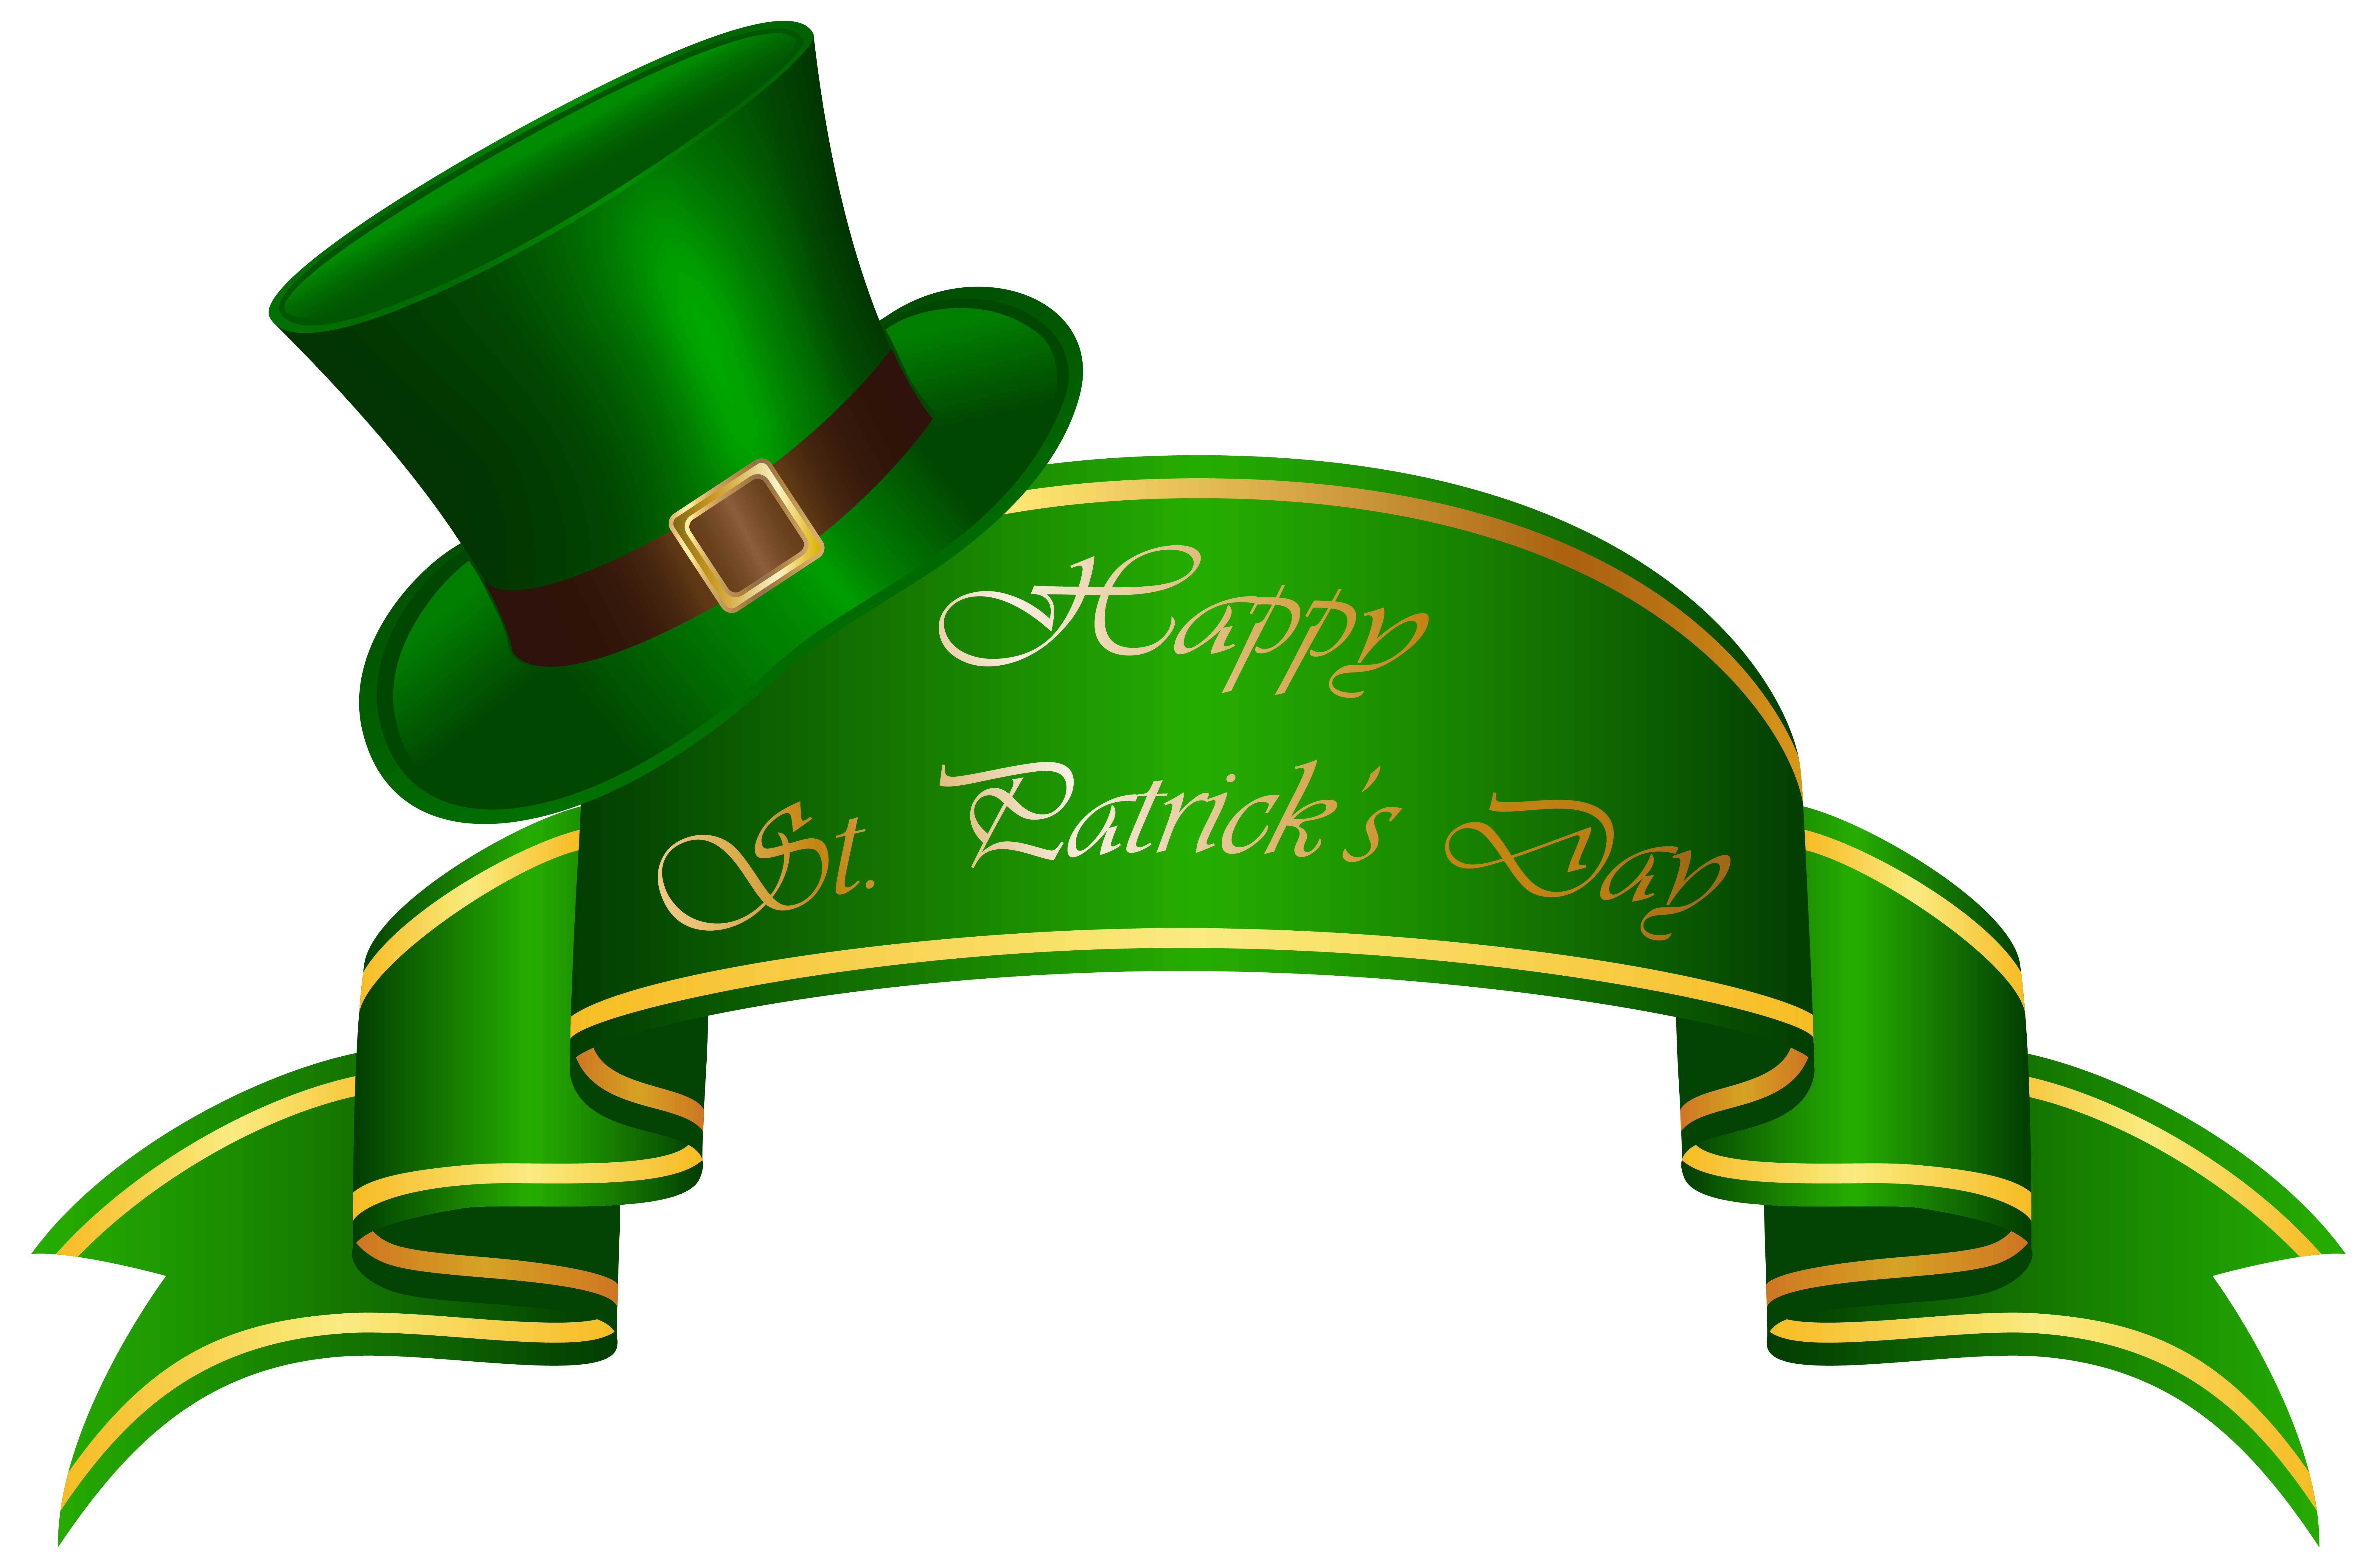 Green Day clipart st patricks day Size Hat PNG Image and